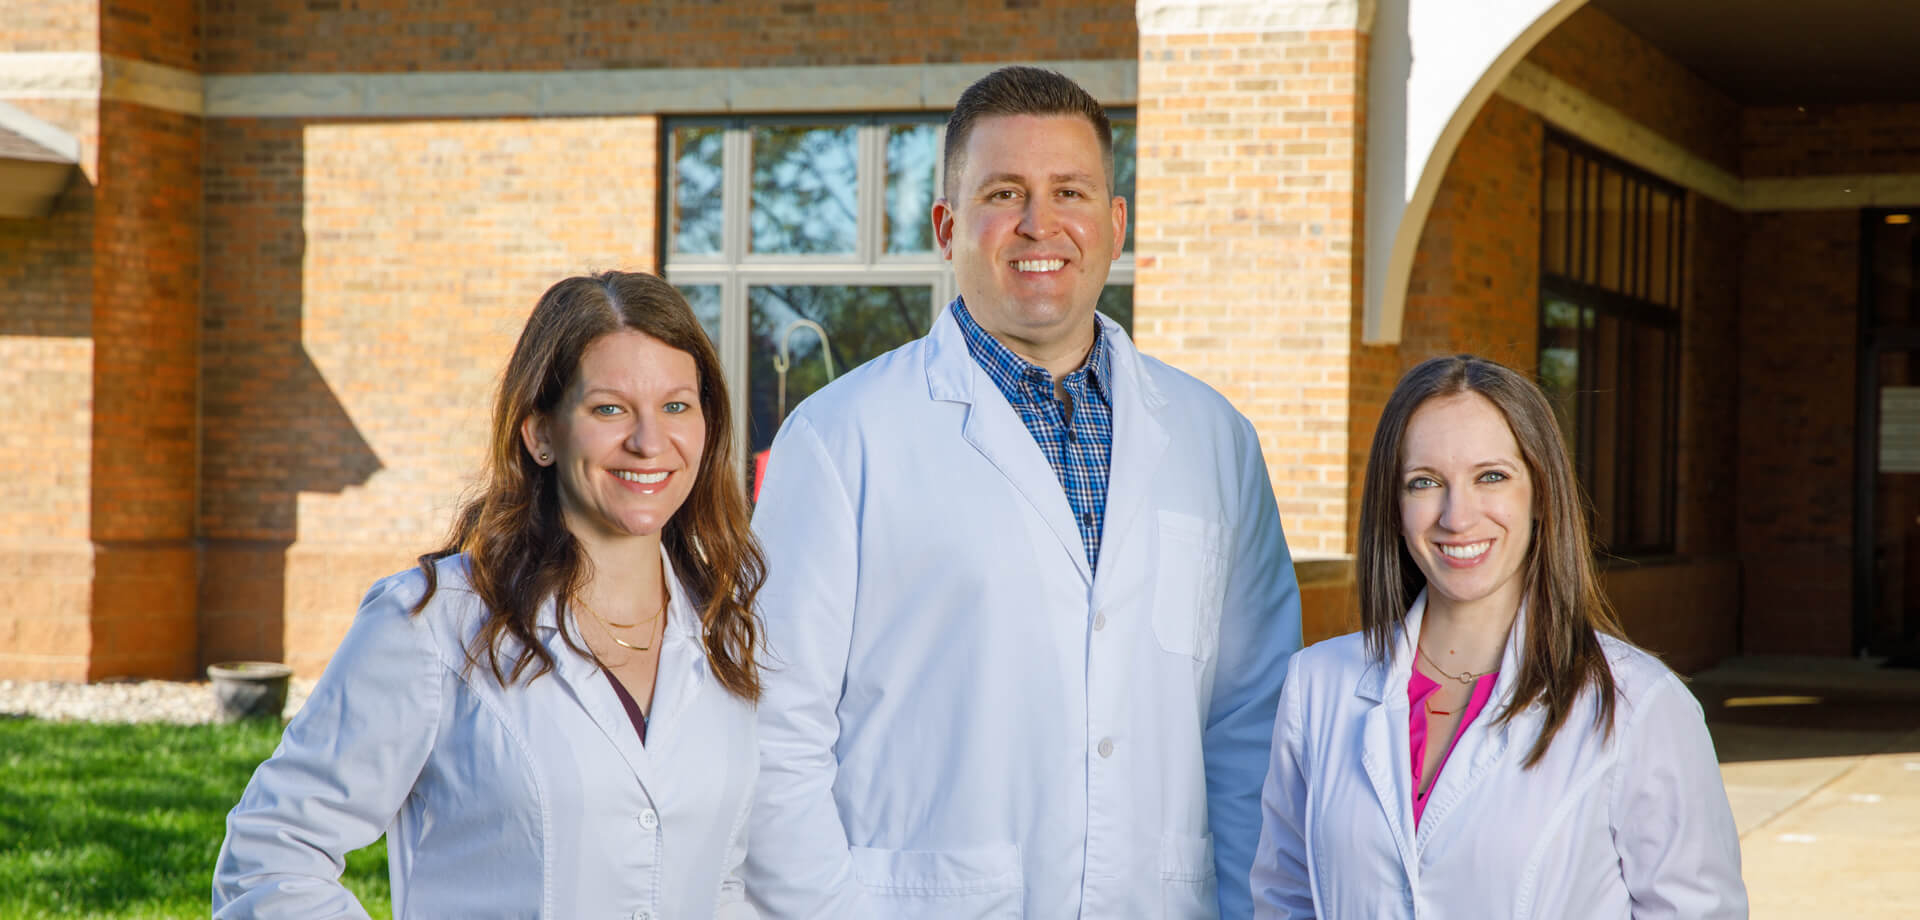 A group photo of doctors Mlodik, Snyder, and Kutzler, standing in front of the main entrance of Point Place Dental